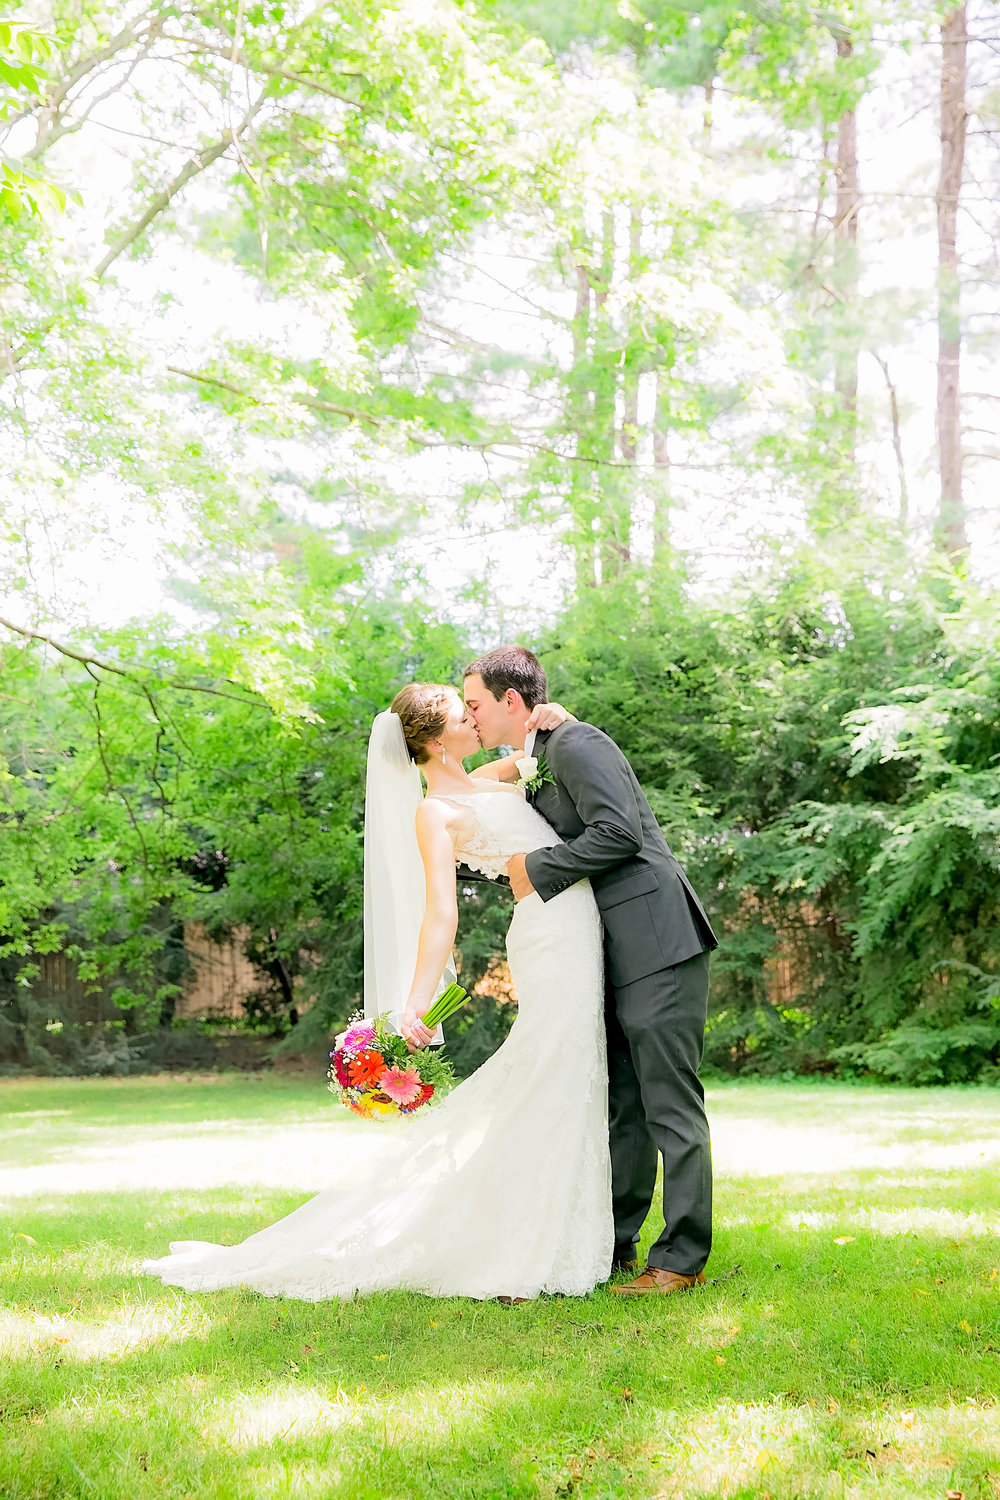 Hot Springs, NC wedding, East Tennessee Wedding photography, bride and groom dip and kiss